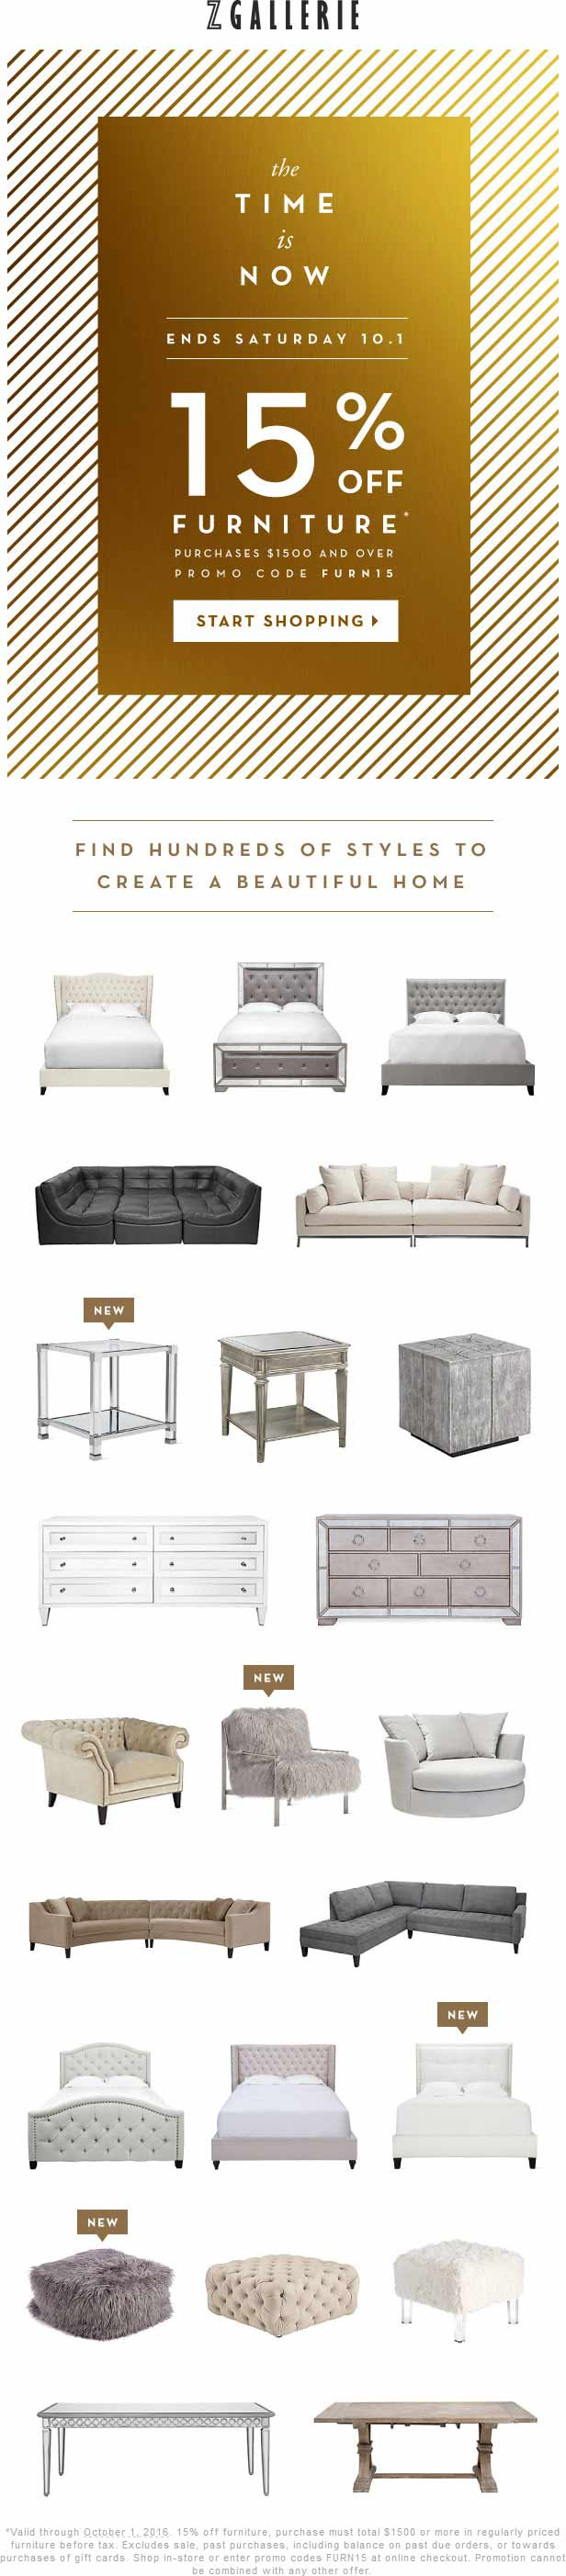 Z Gallerie Coupon January 2018 15% off $1500 on furniture at Z Gallerie, or online via promo code FURN15